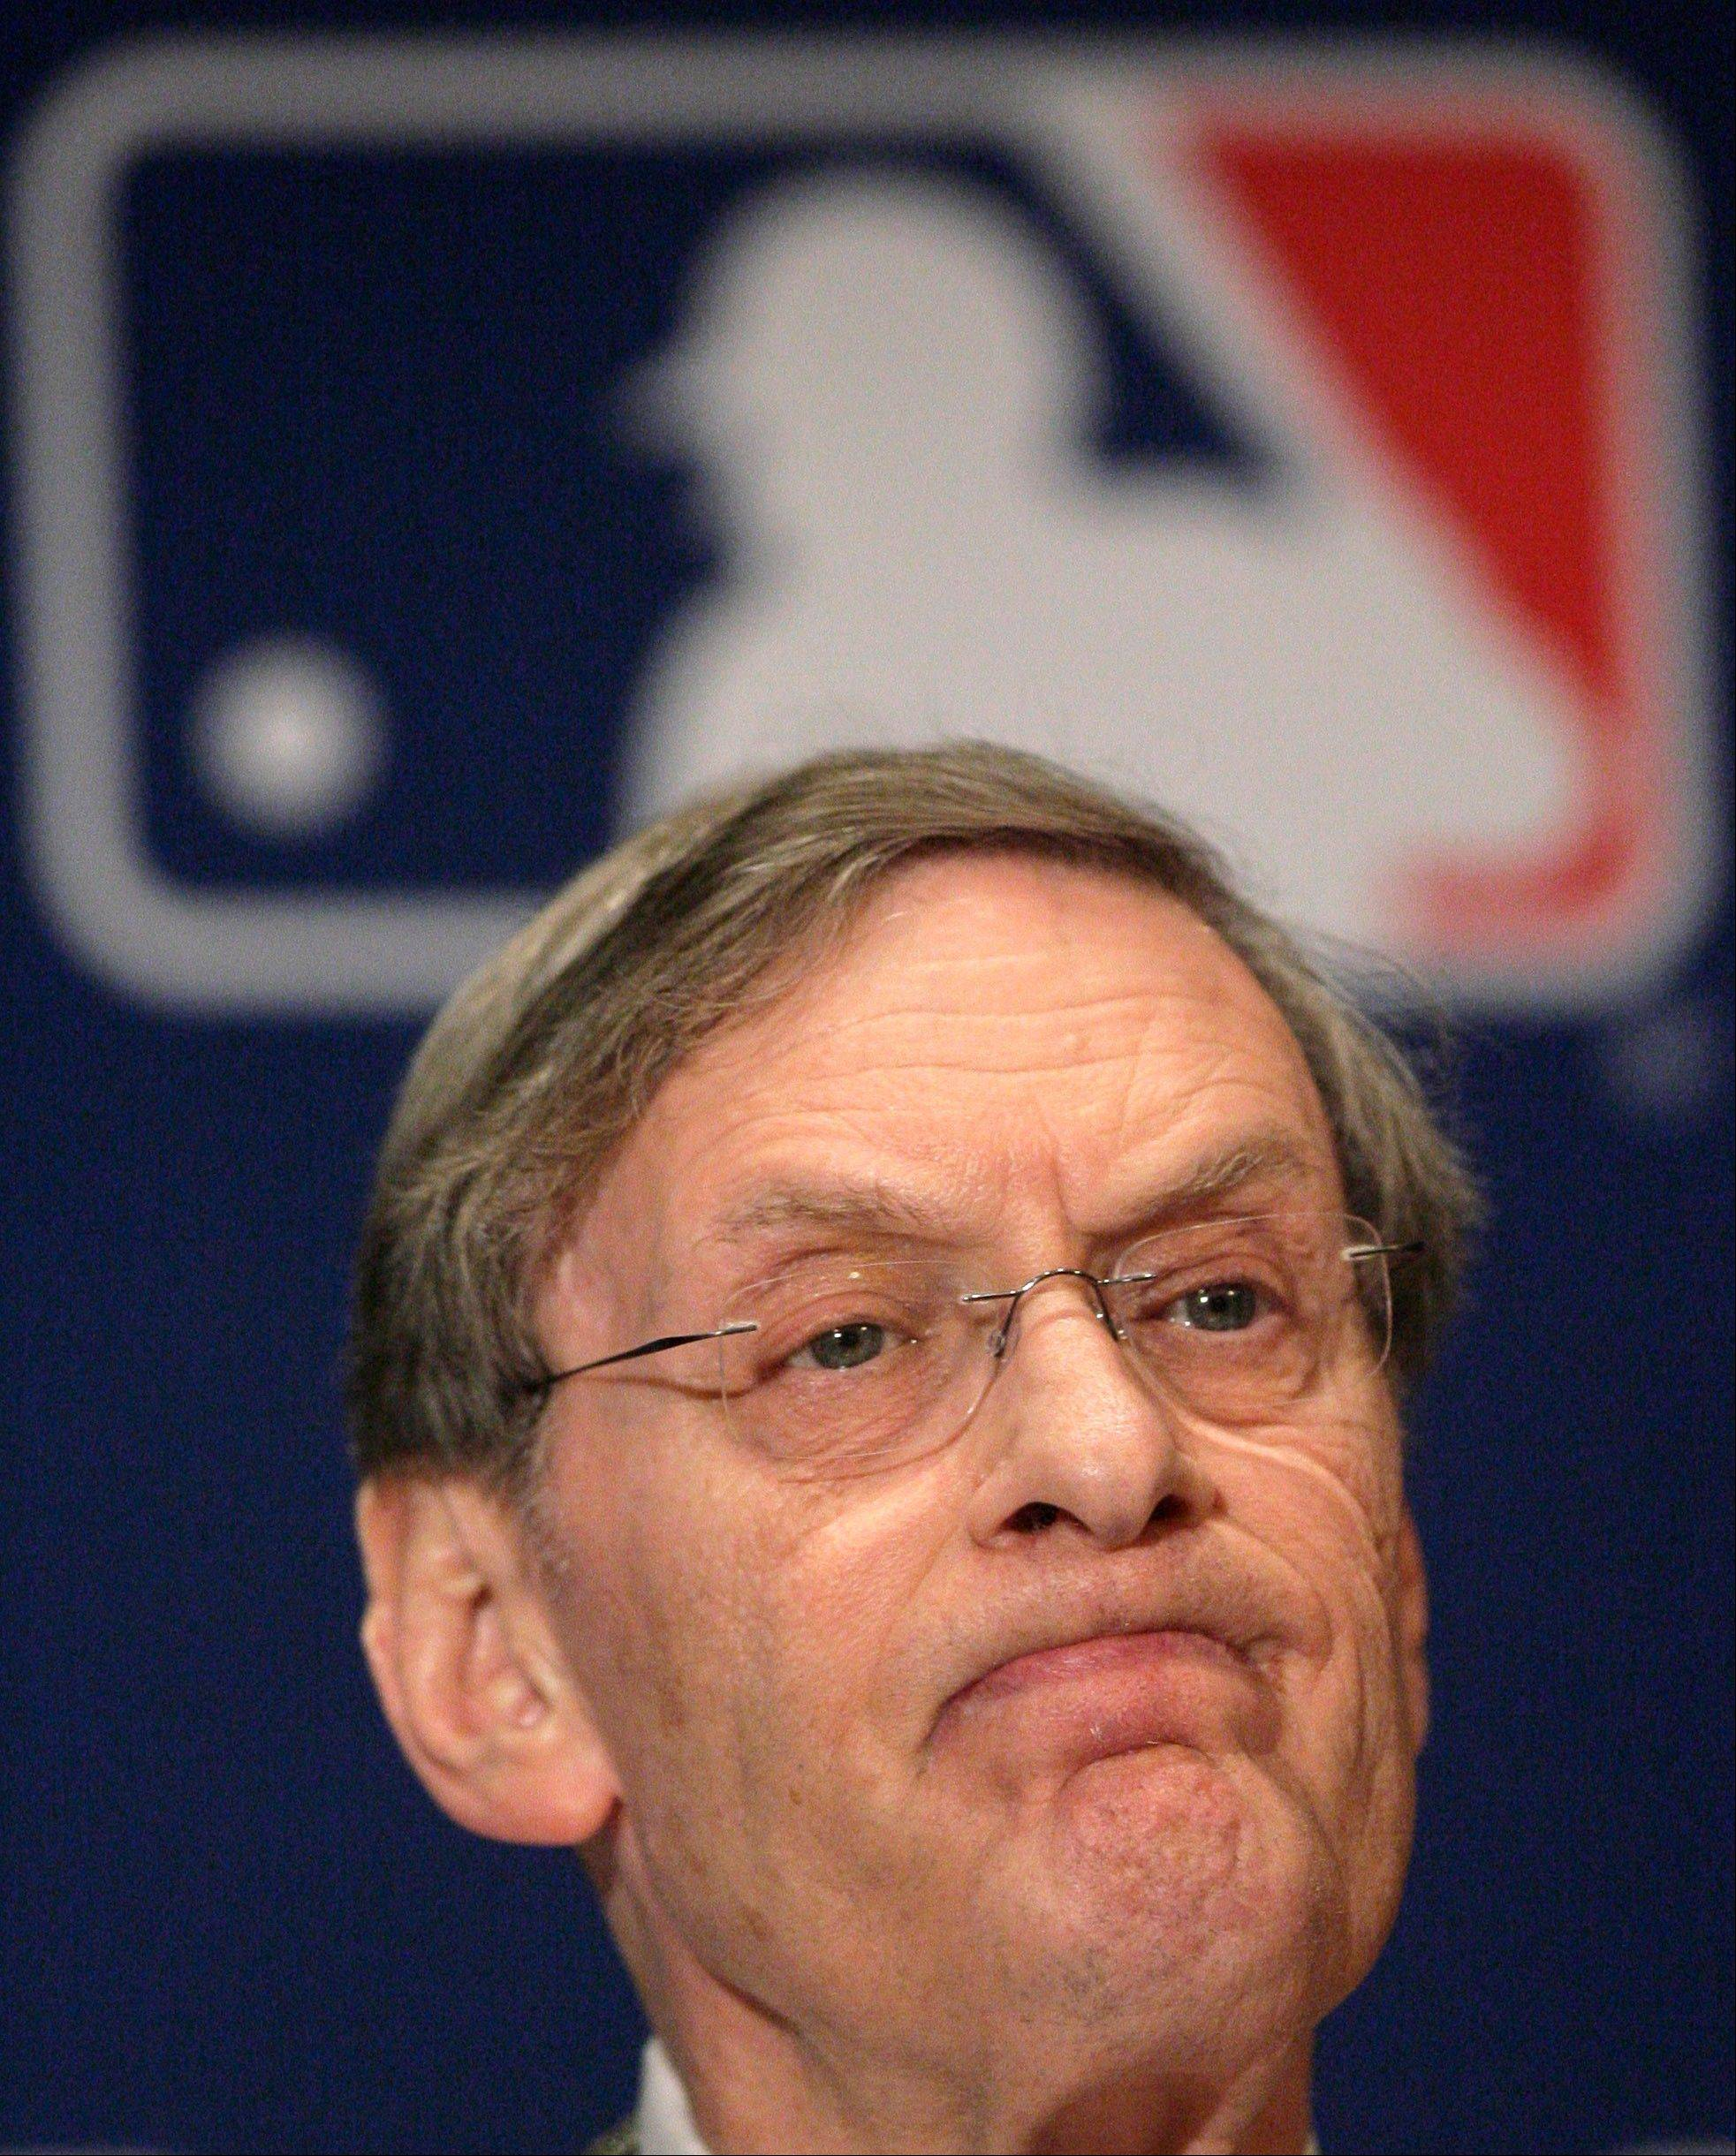 Major League Baseball Commissioner Bud Selig speaks during a news conference in 2007.